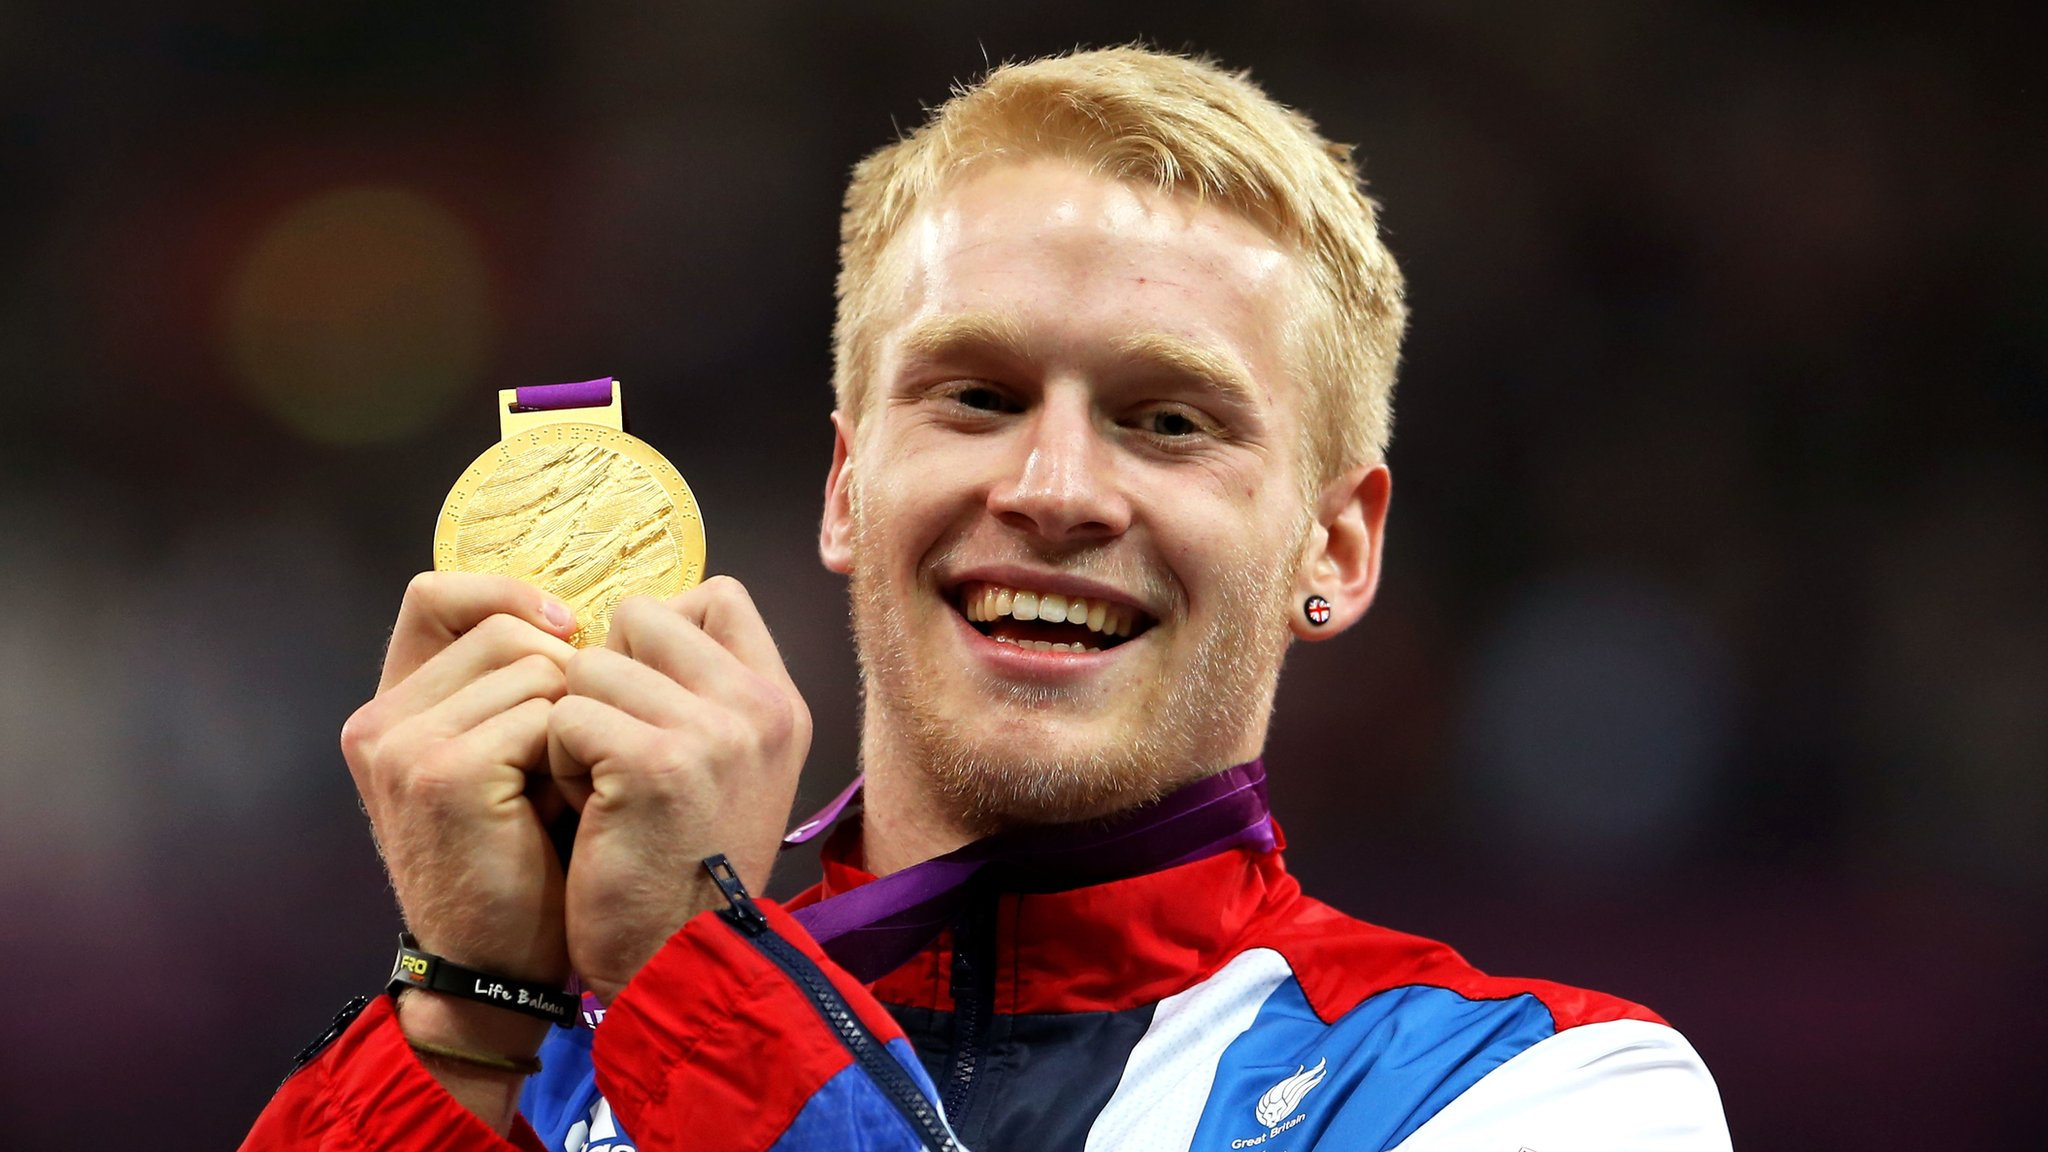 Rio 2016: Jonnie Peacock in ParalympicsGB track and field team